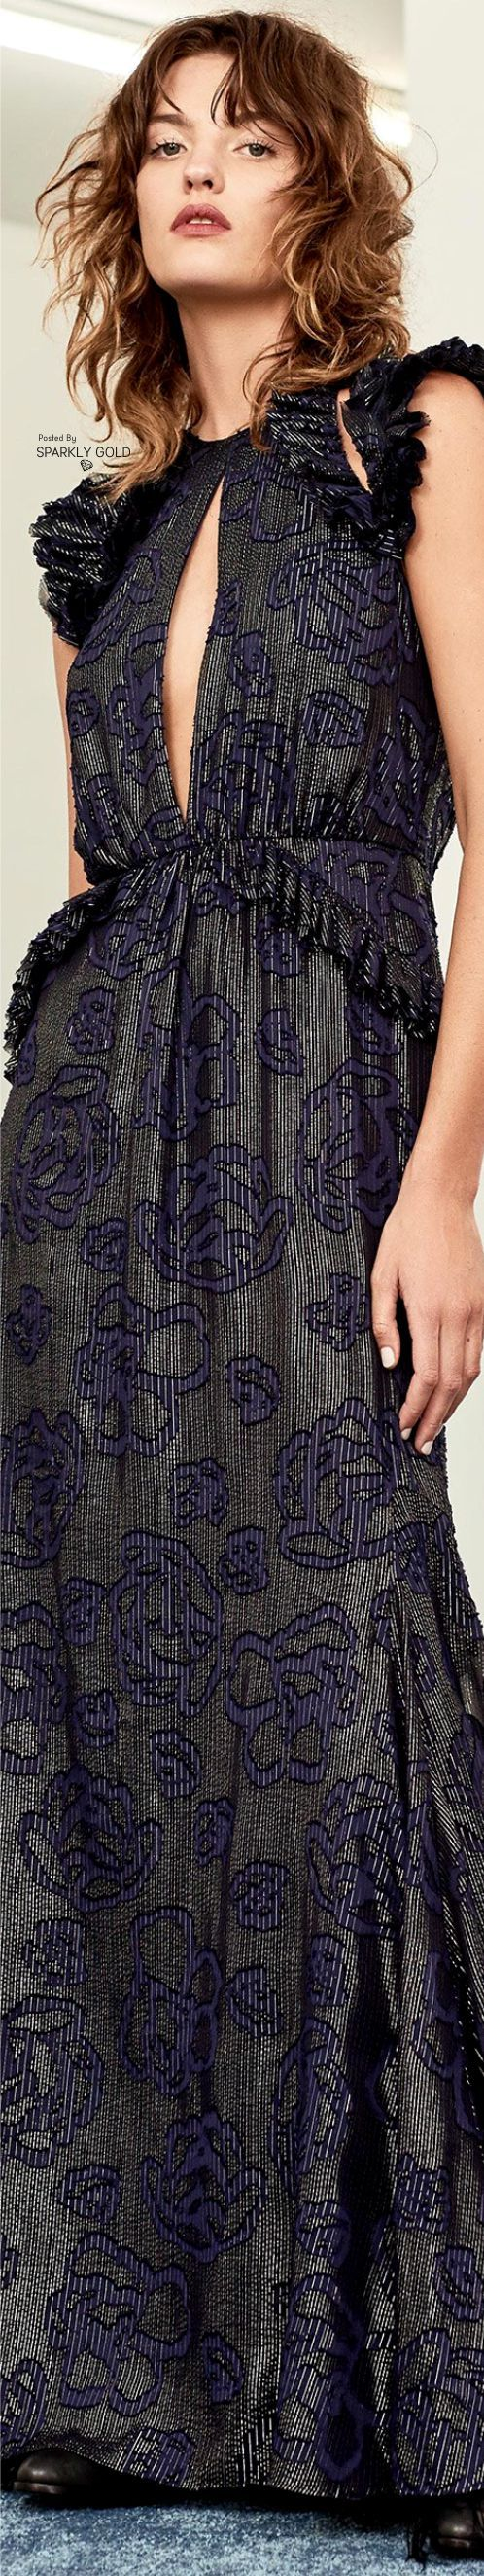 Beautiful dress from Camilla and Marc| Shop at 1067 High Street,Armadale #Armadale #Australia